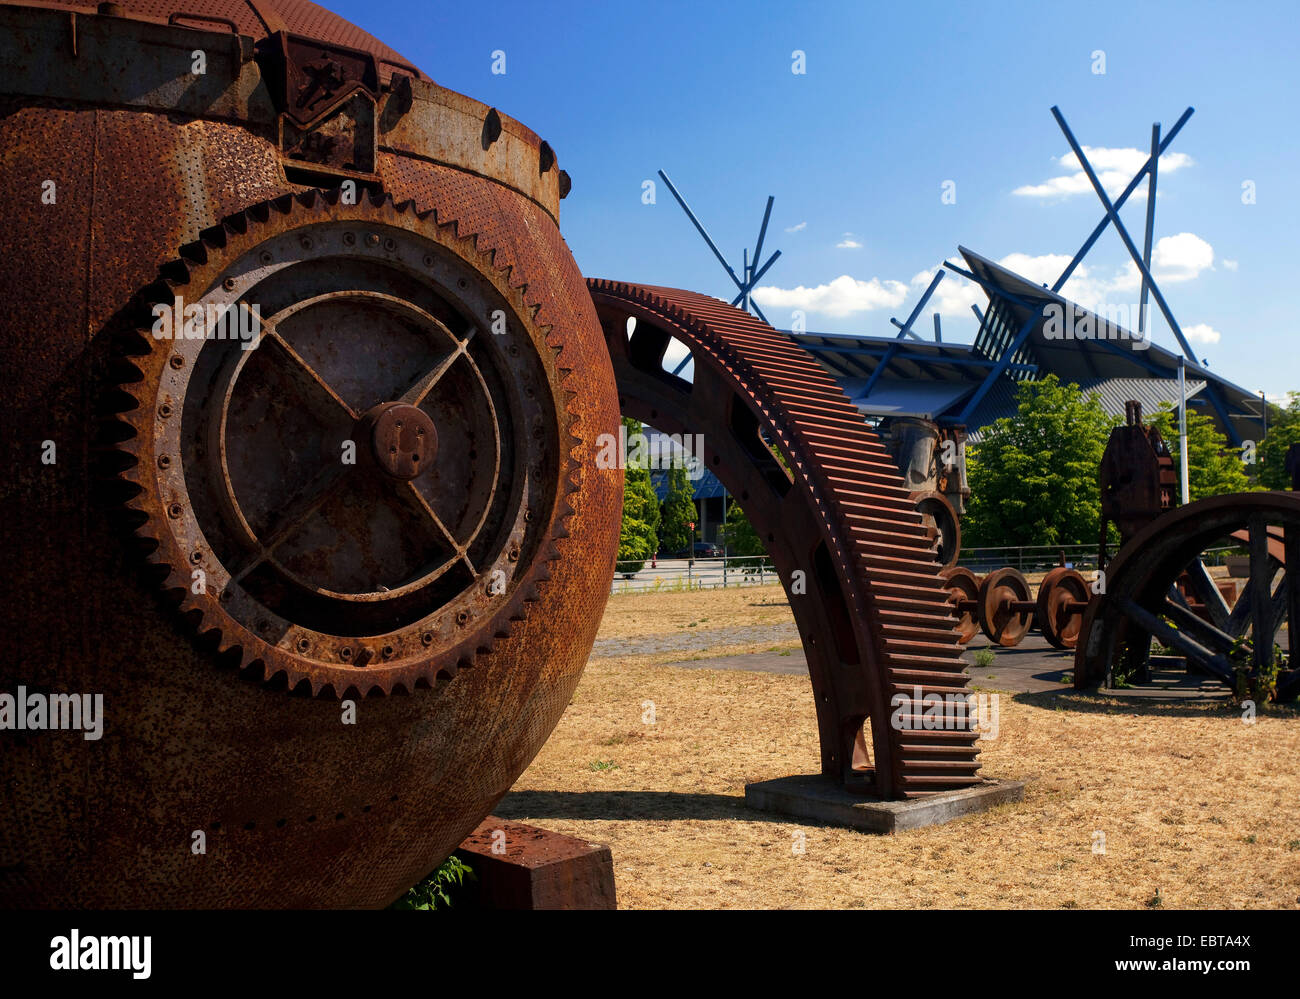 CentrO Oberhausen and rusty exhibits of industrial museum, Germany, North Rhine-Westphalia, Ruhr Area, Oberhausen Stock Photo